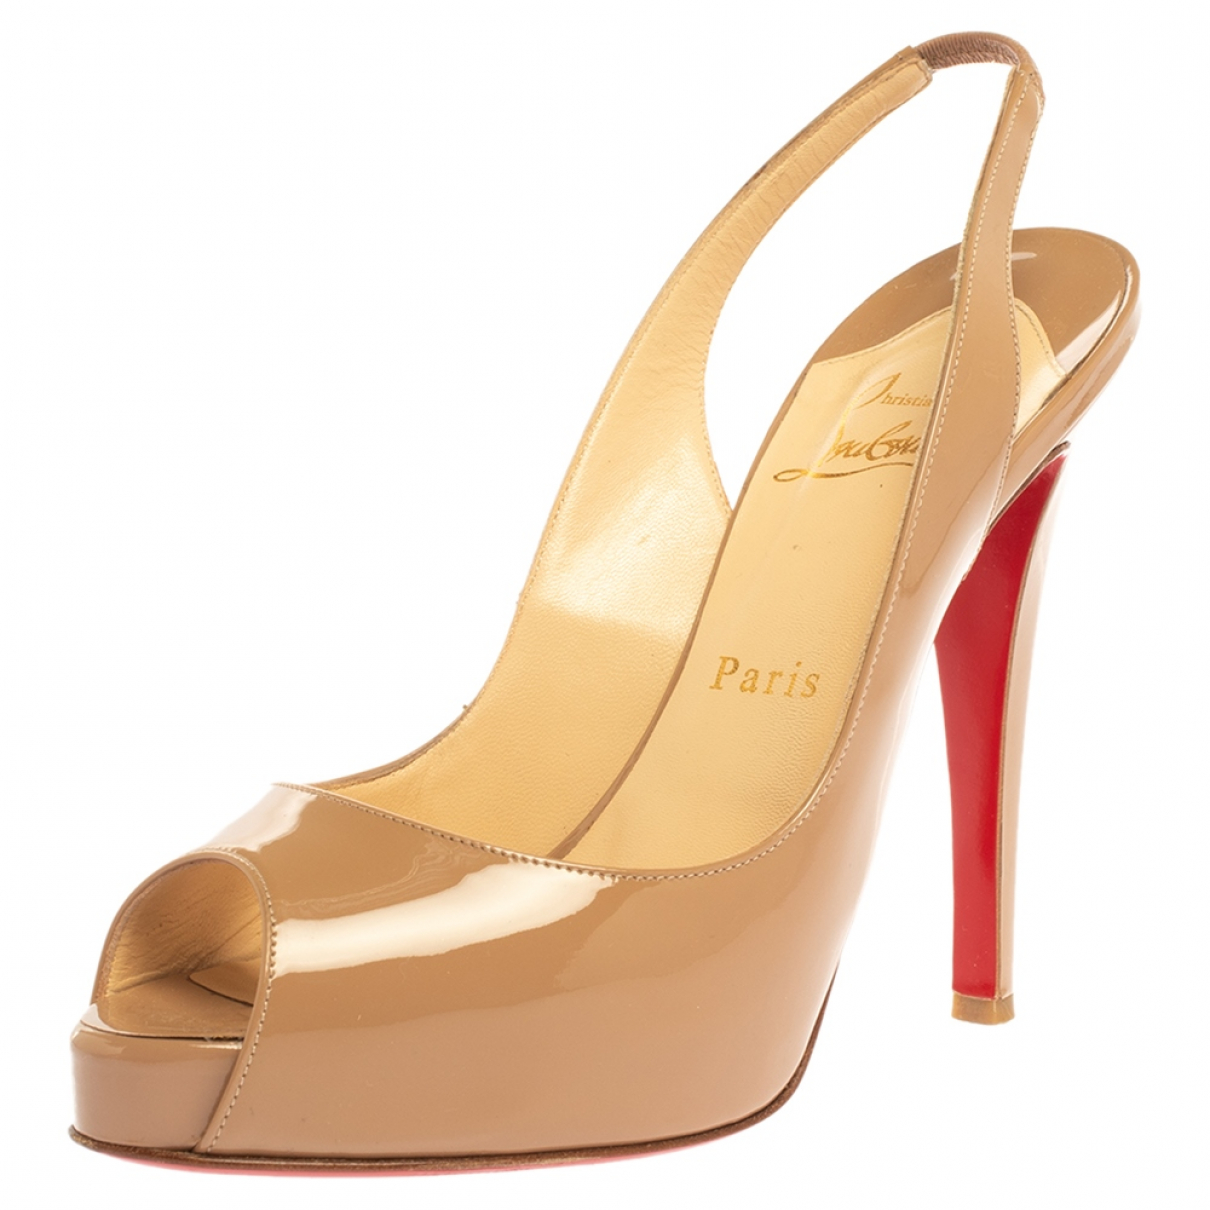 Christian Louboutin N Beige Patent leather Sandals for Women 7 US